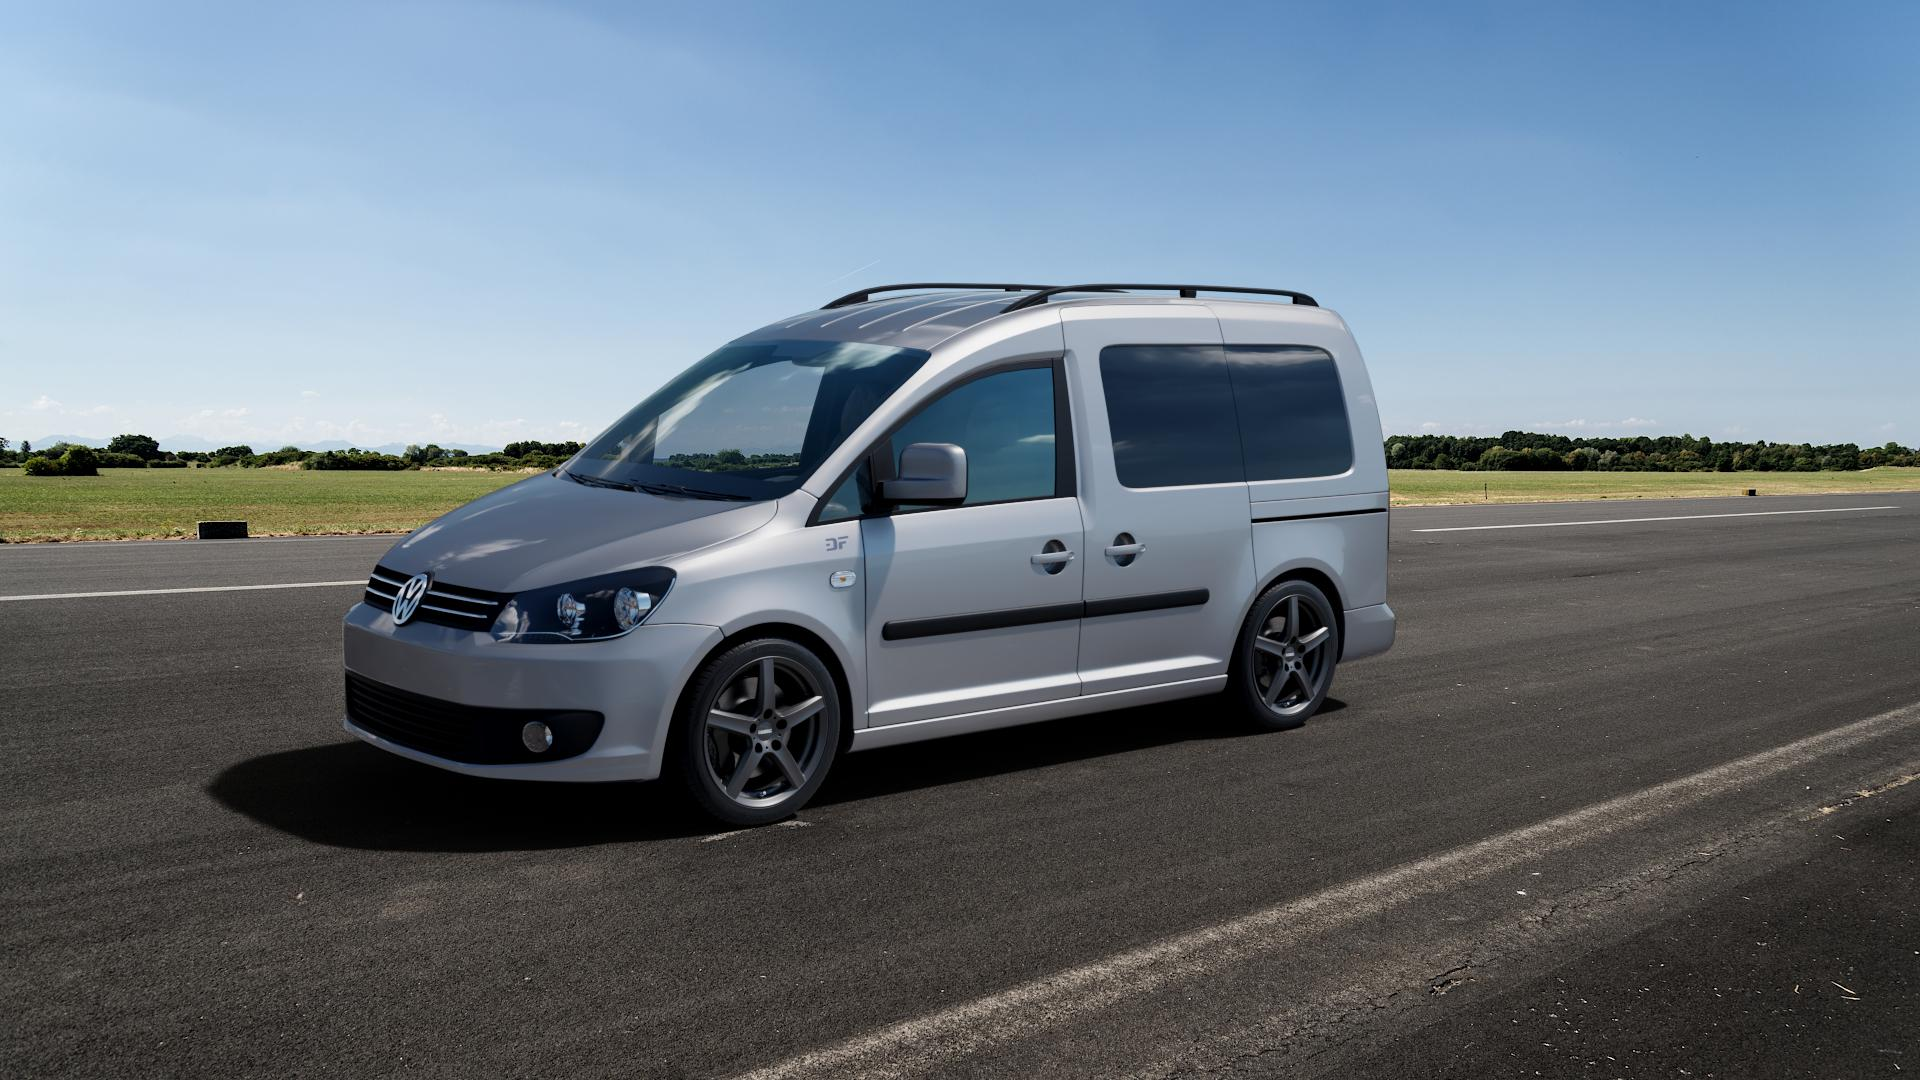 DEZENT TY GRAPHITE MATT Felge mit Reifen grau in 17Zoll Winterfelge Alufelge auf silbernem Volkswagen (VW) Caddy 3 ⬇️ mit 15mm Tieferlegung ⬇️ Big_Vehicle_Airstrip_1 Frontansicht_1